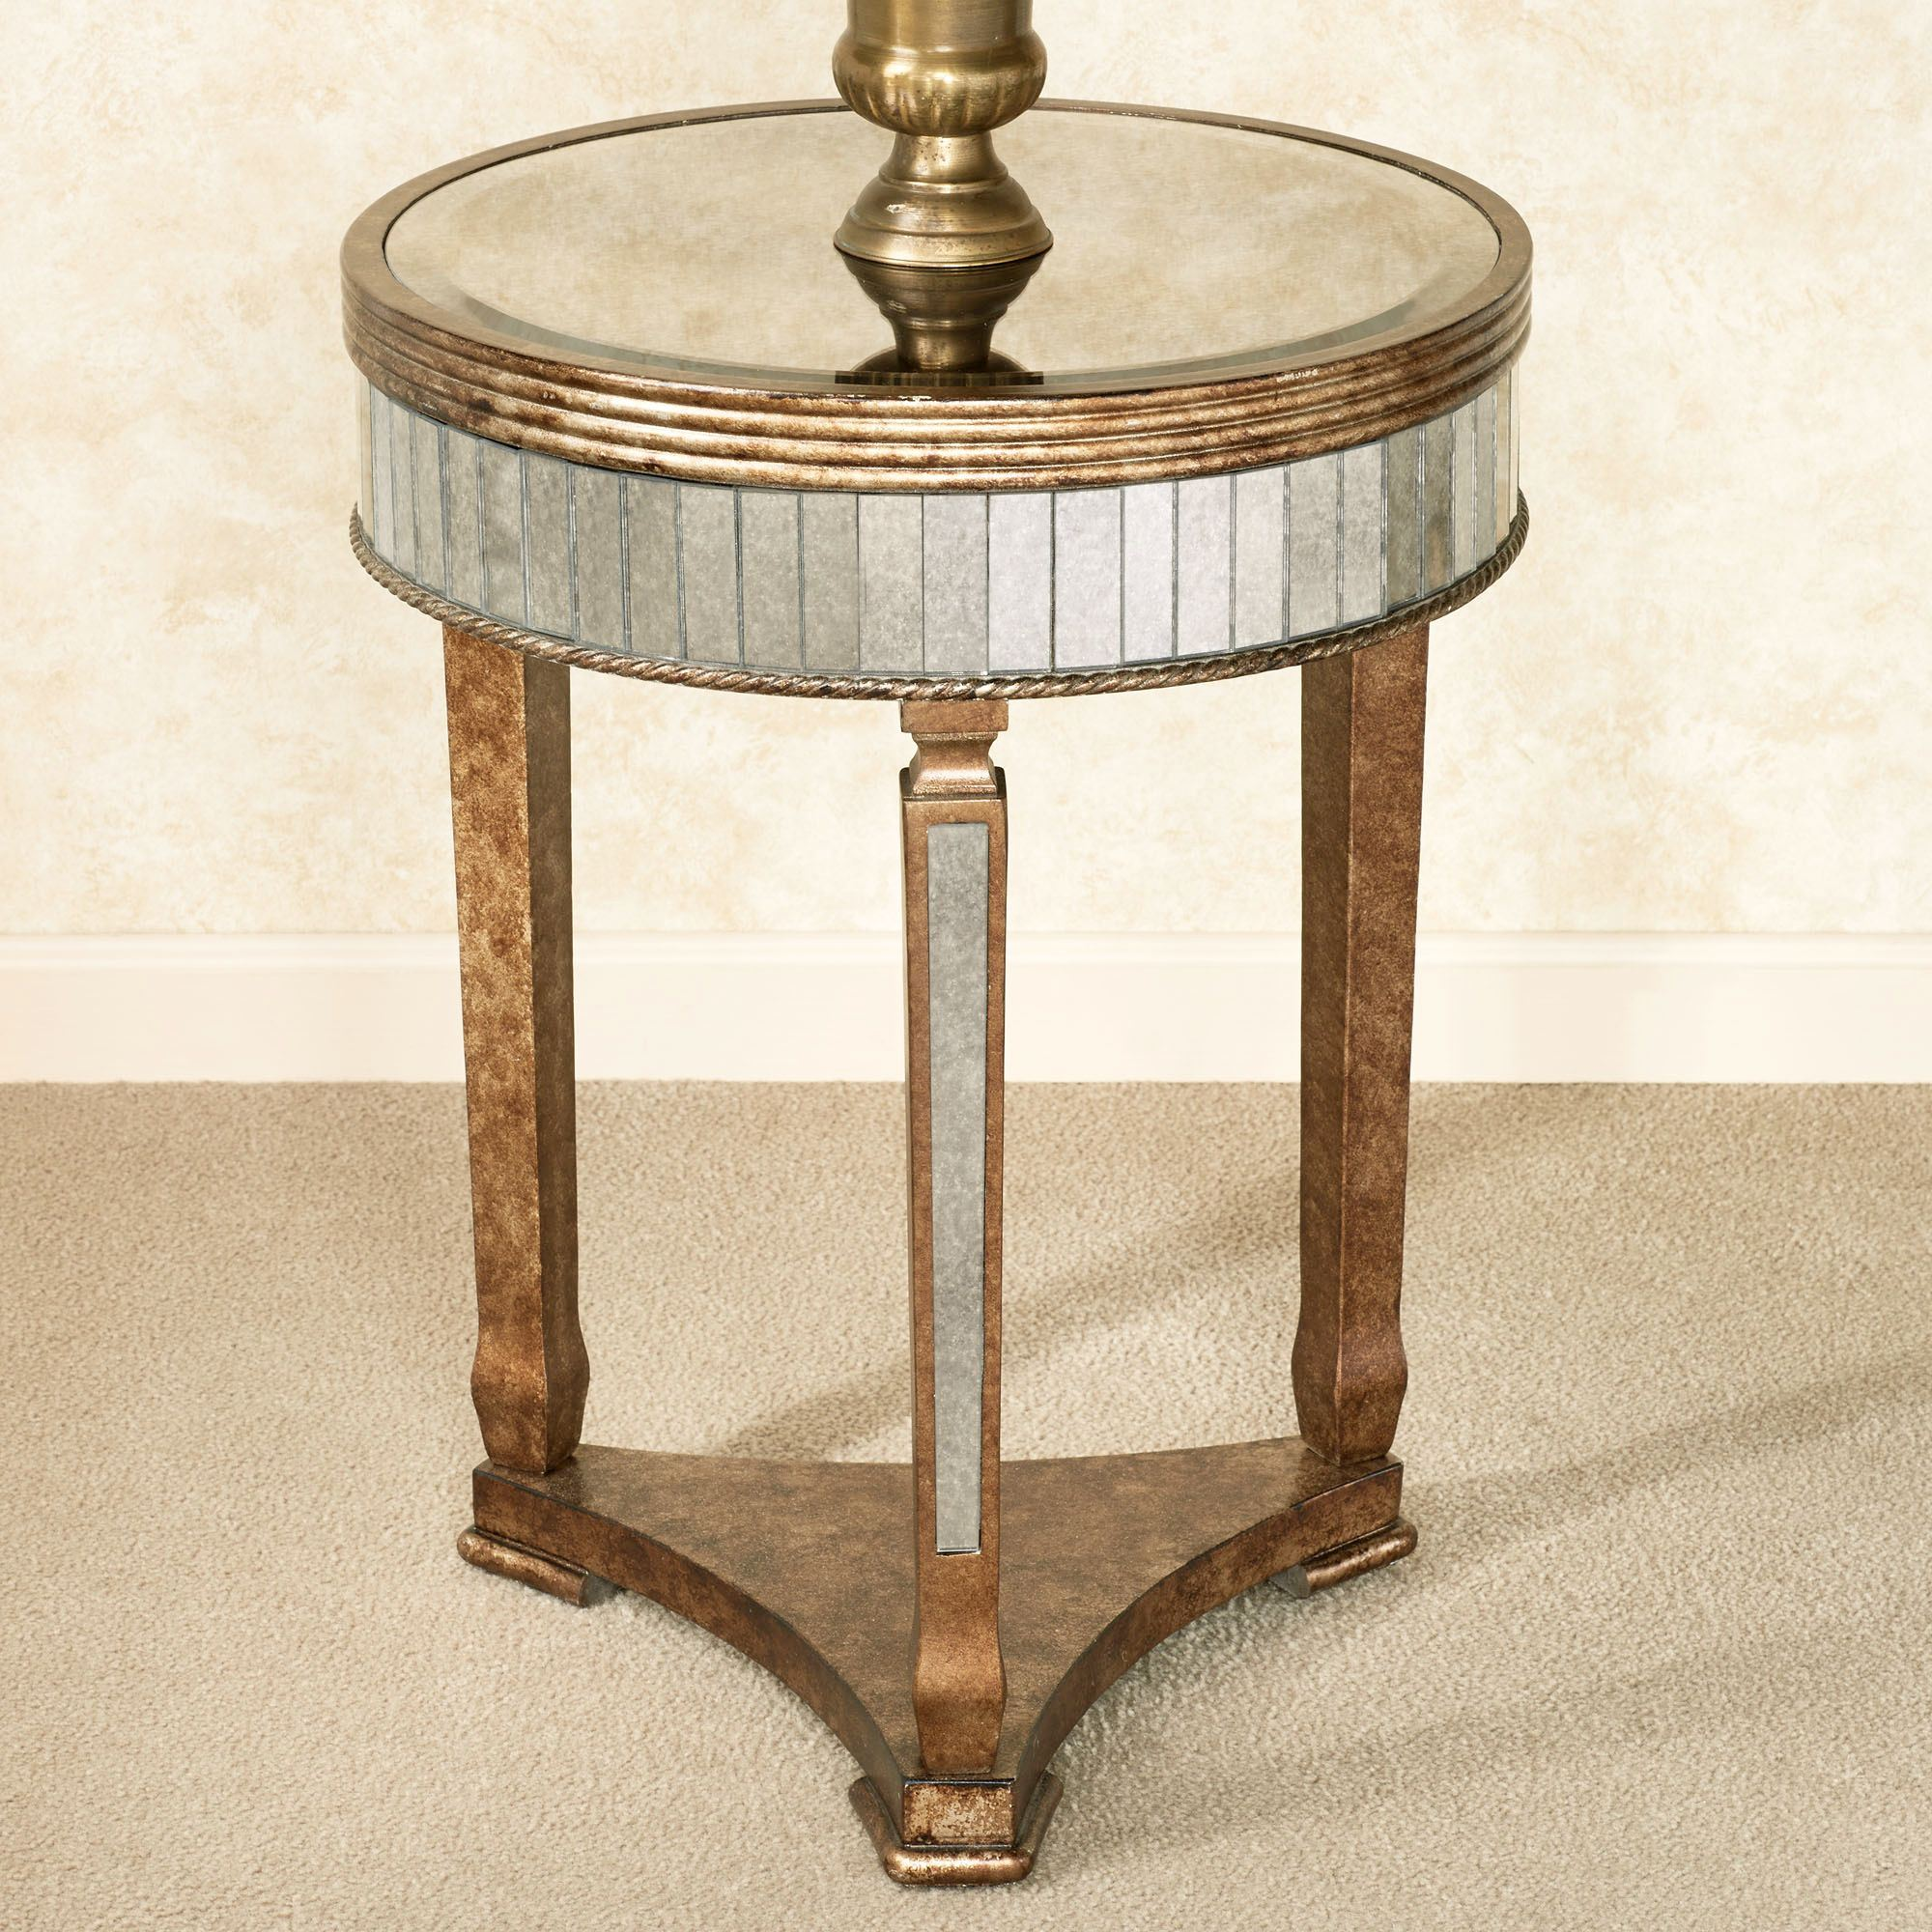 round venetian mirrored foyer table trgn bella mina accent gold click expand antiqued tabl living room mirror furnitu for premade legs white distressed wood coffee sliding barn